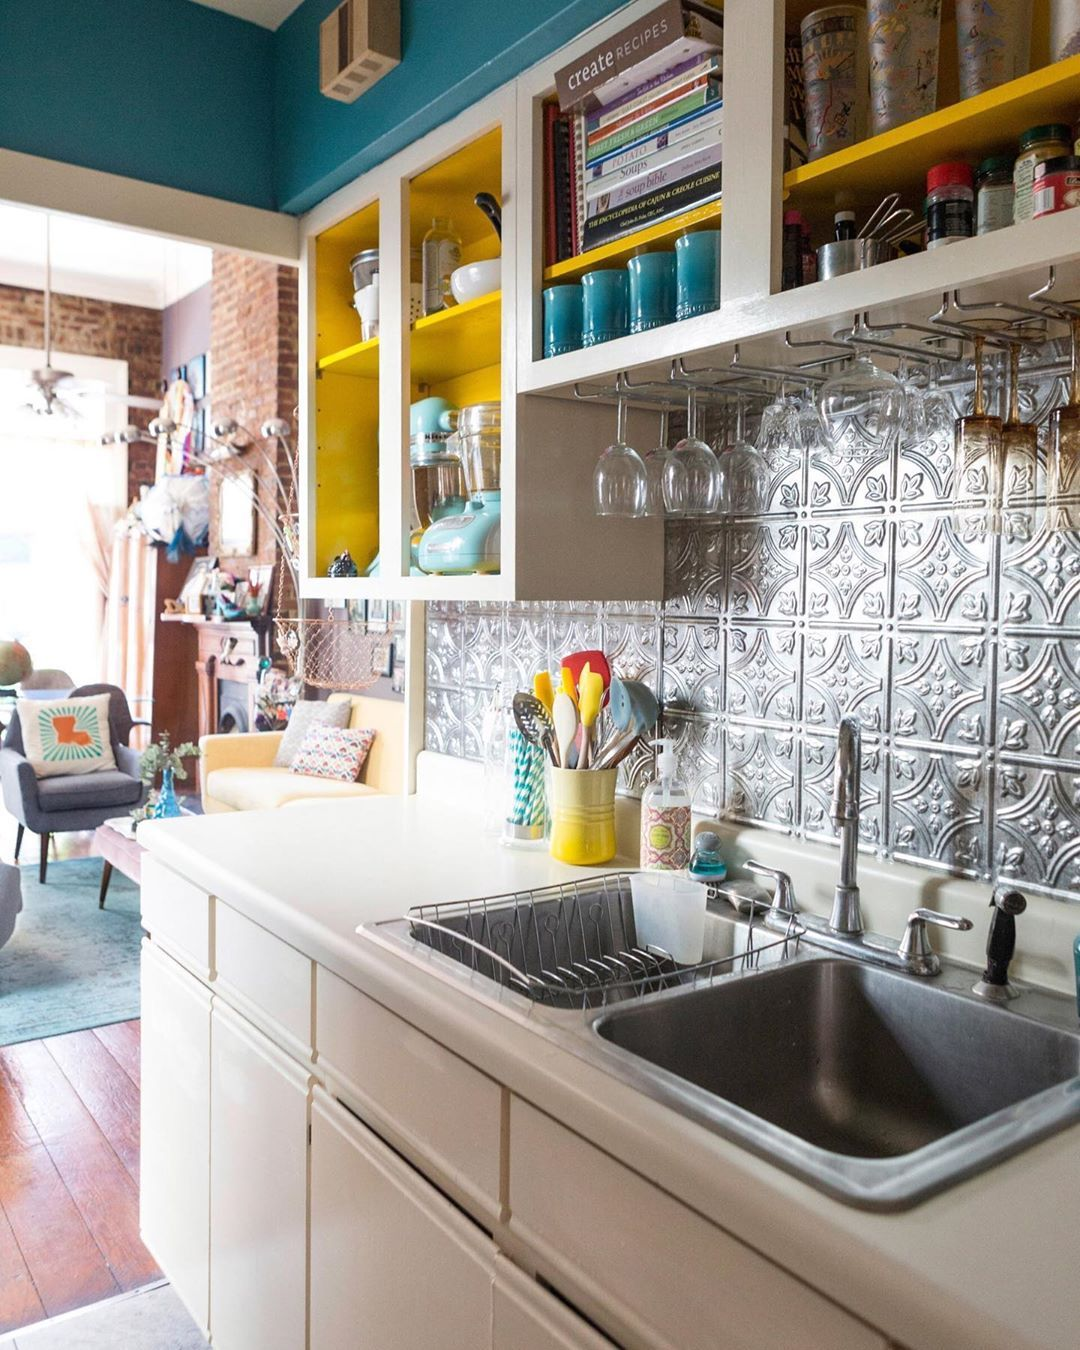 Apartment Therapy On Instagram Your Kitchen Can Be Small And Jam Packed With Style We Rounde Apartment Decorating Rental Rental Kitchen Kitchen Design Small